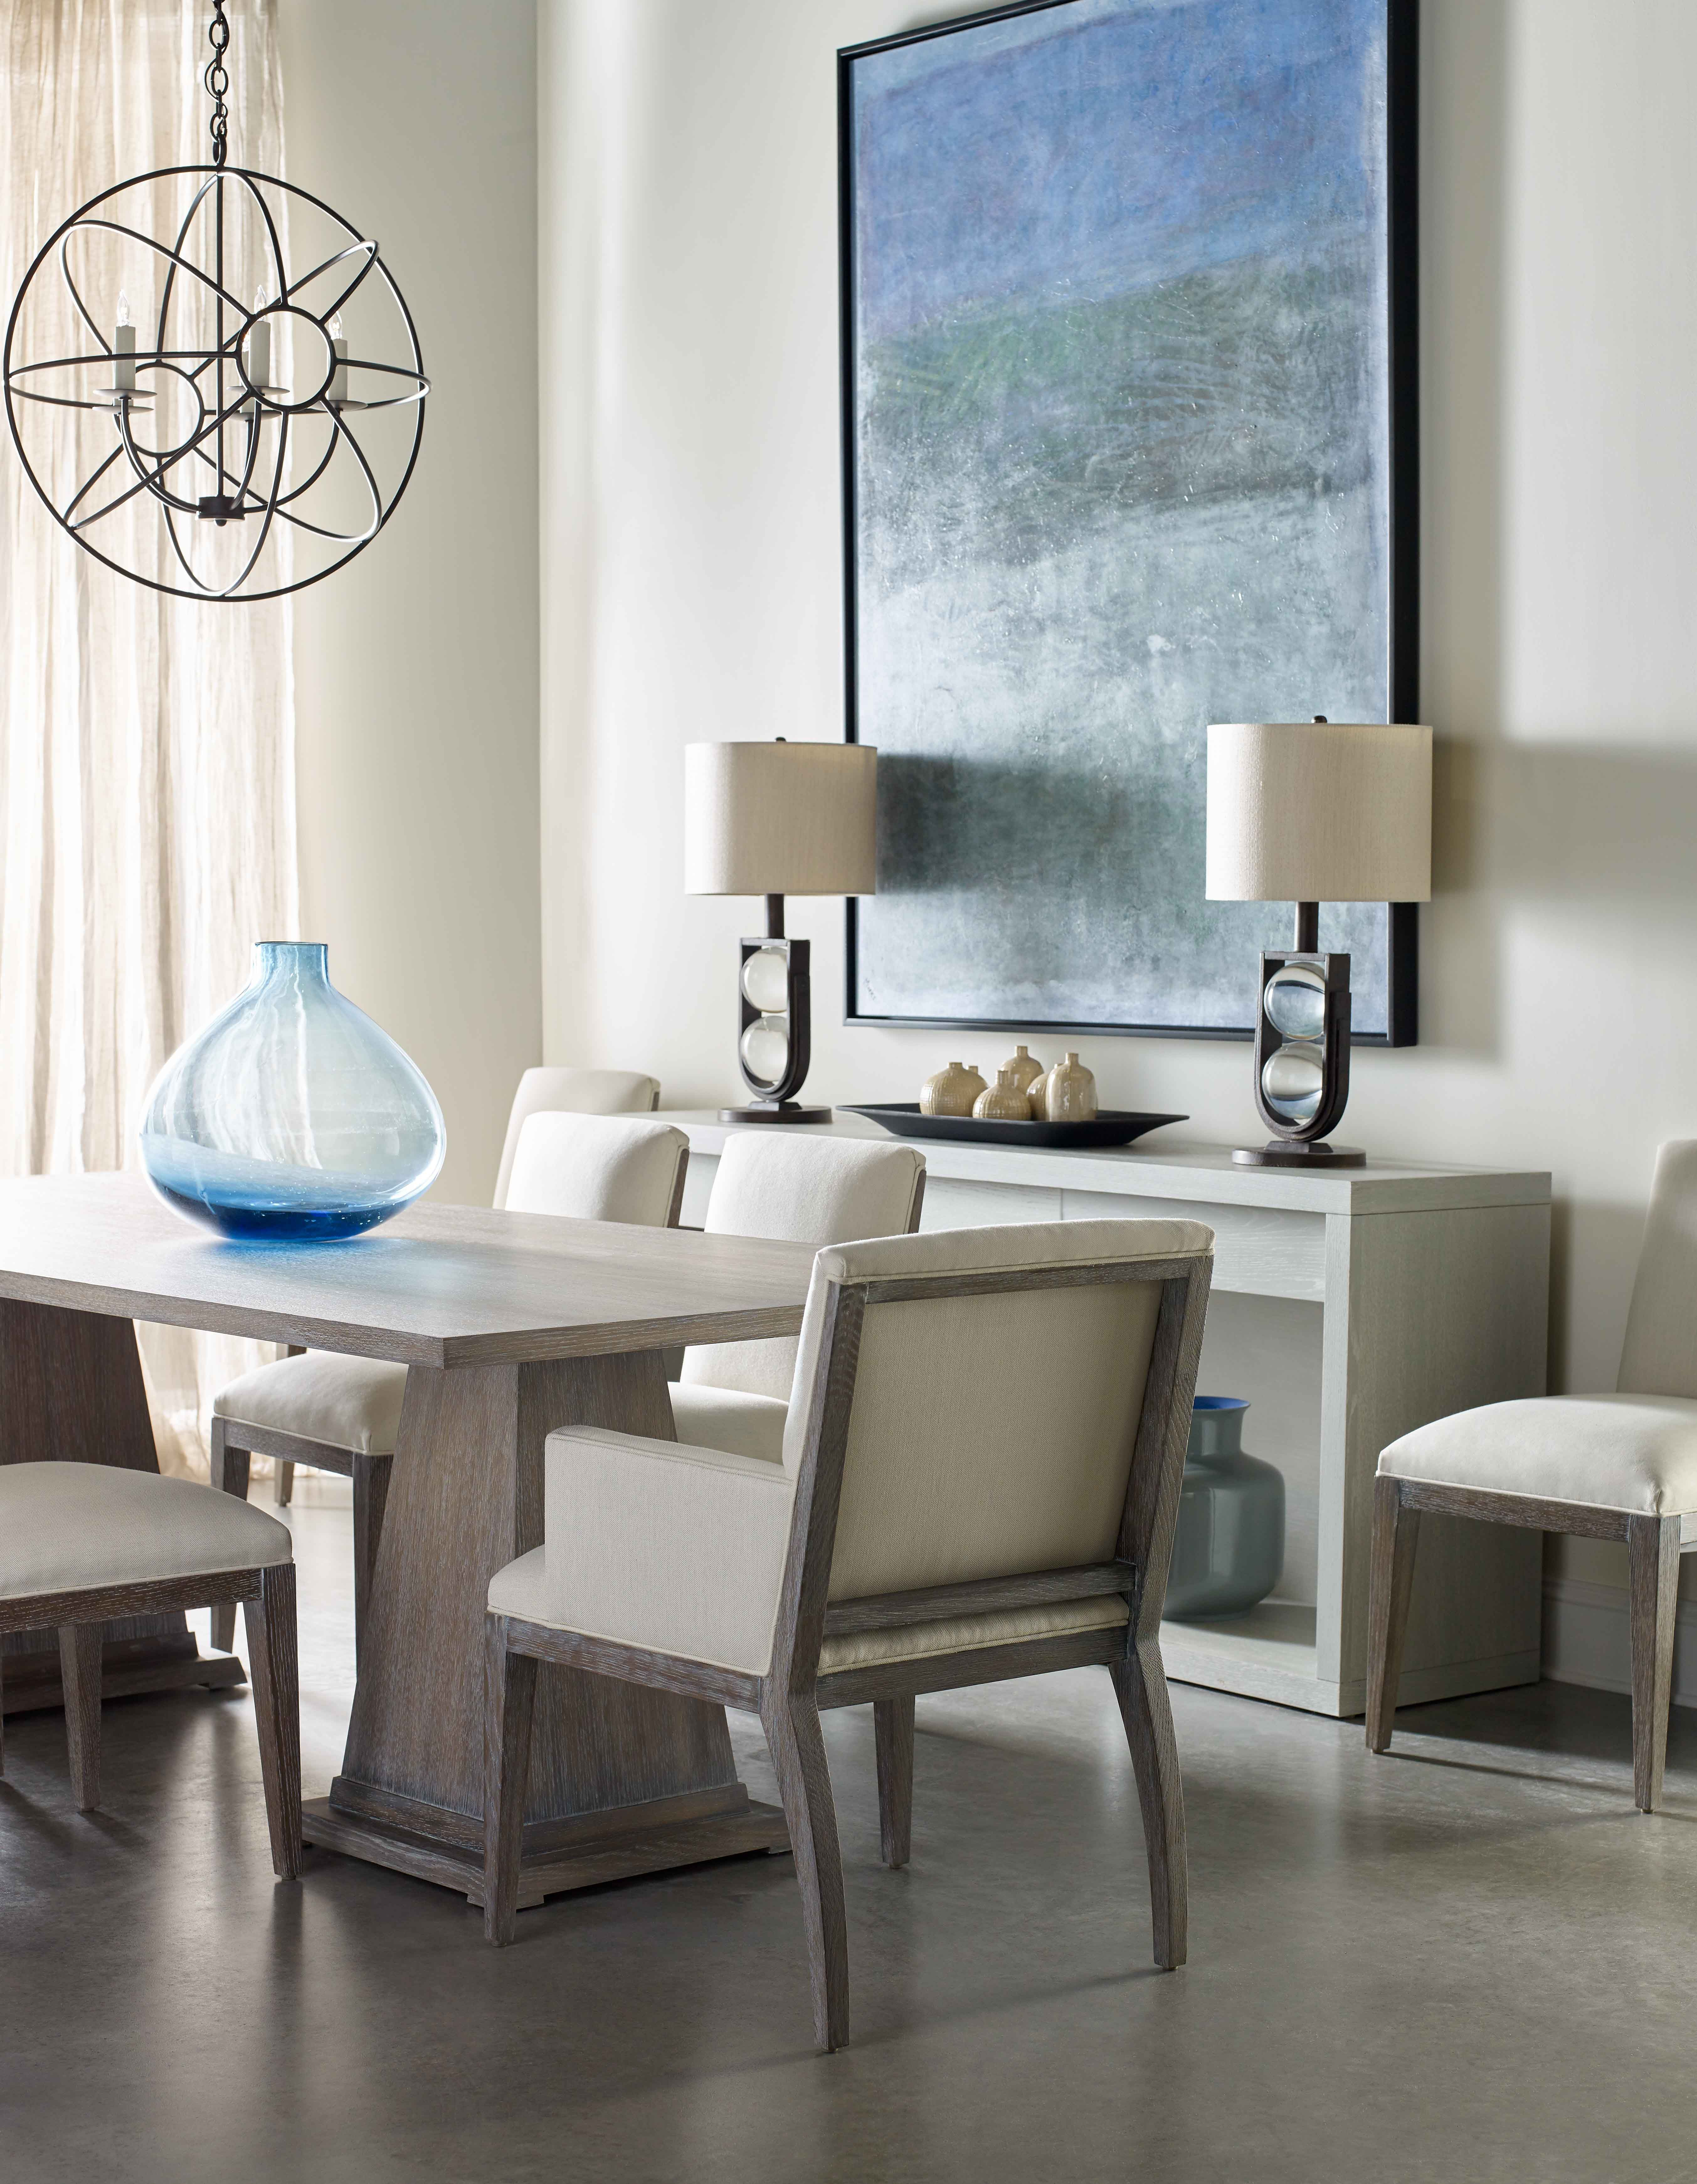 Wedge Double Pedestal Dining Table Larkin Chairs Del Rey